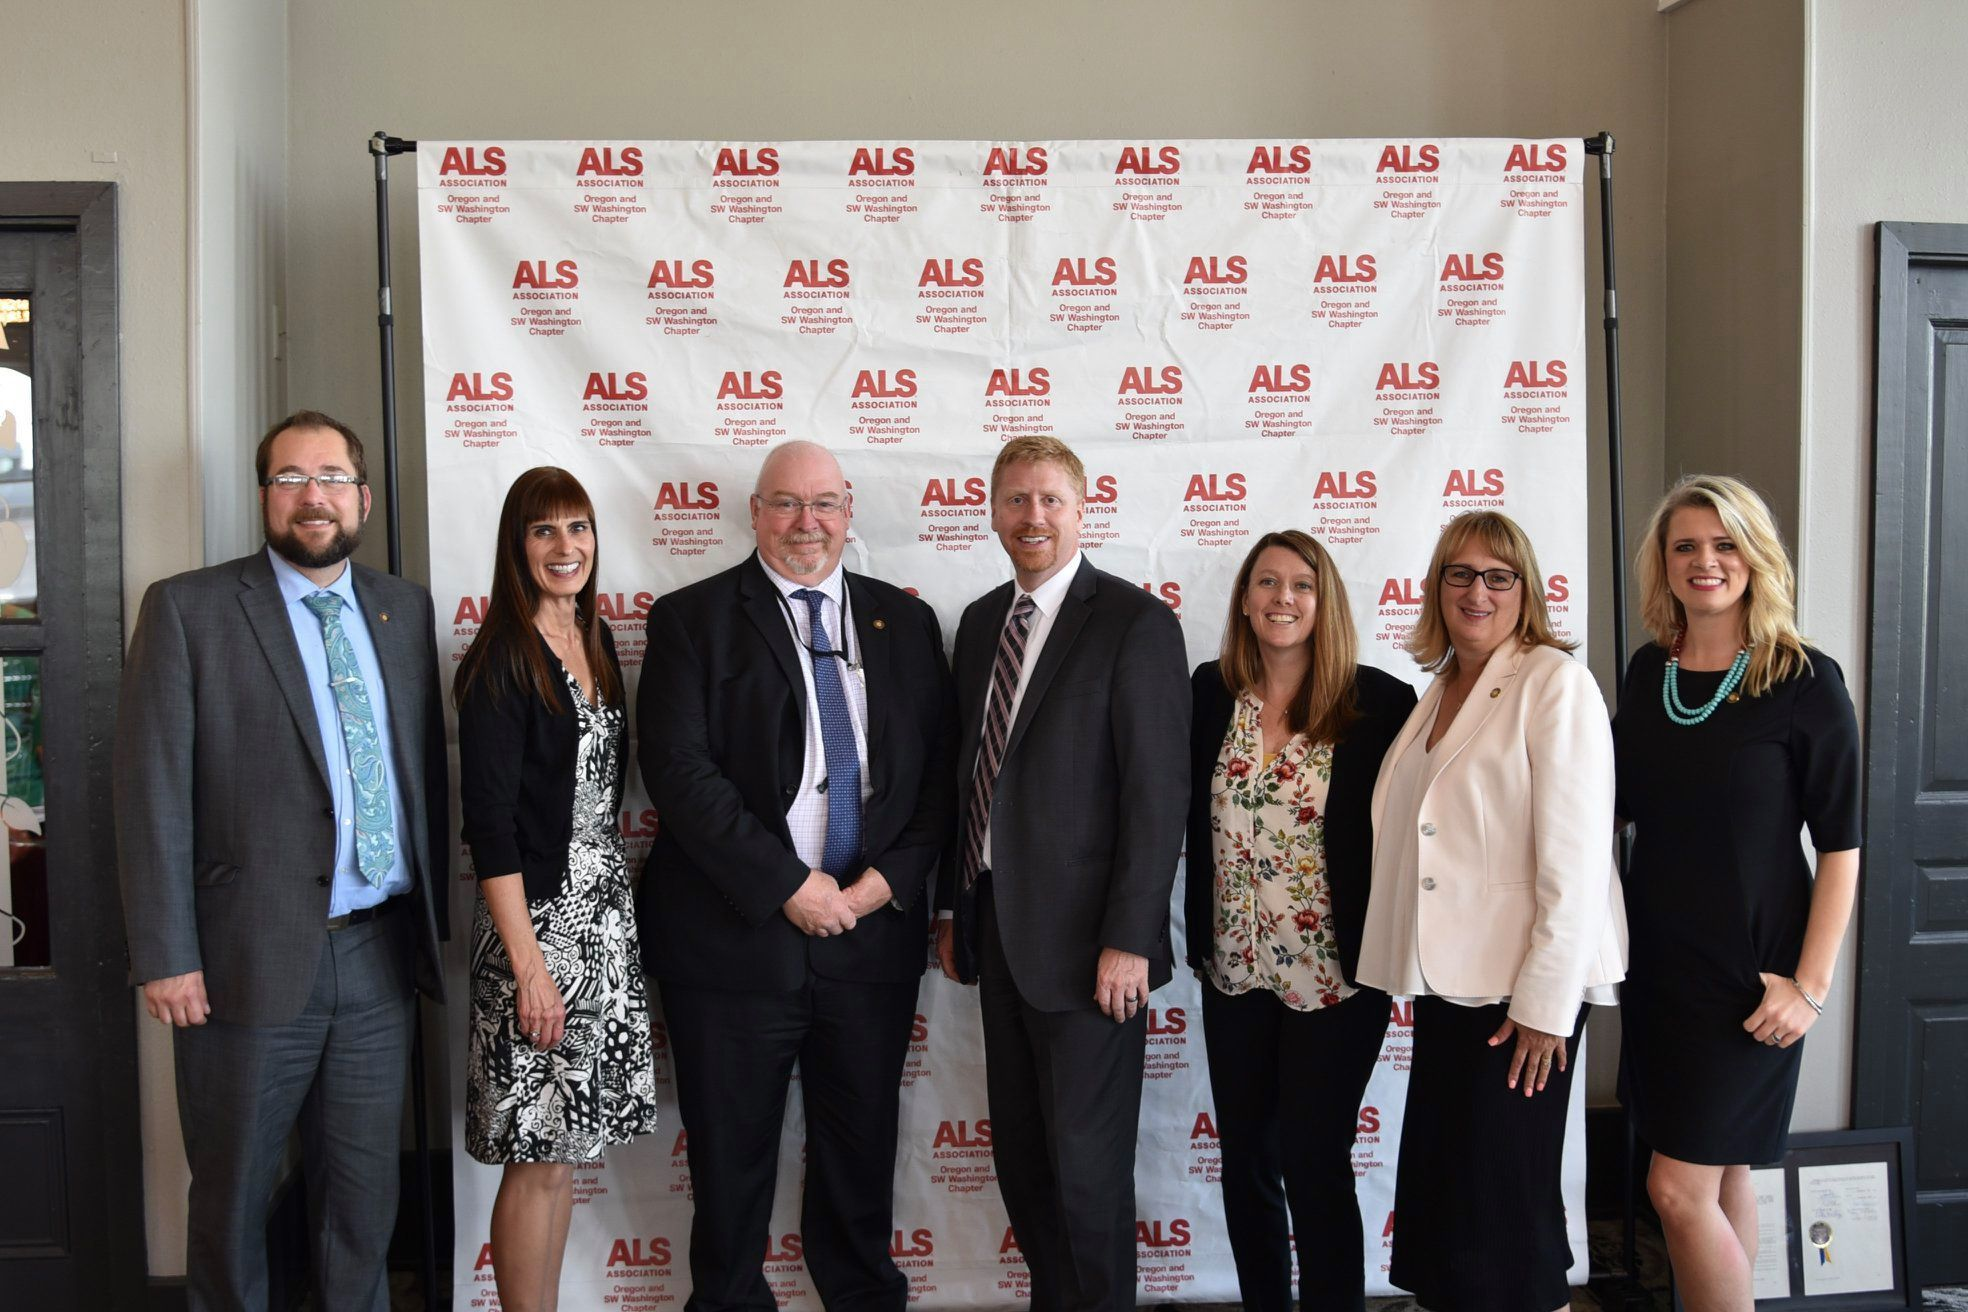 Rep. Findley and Colleagues at an ALS Fundraiser